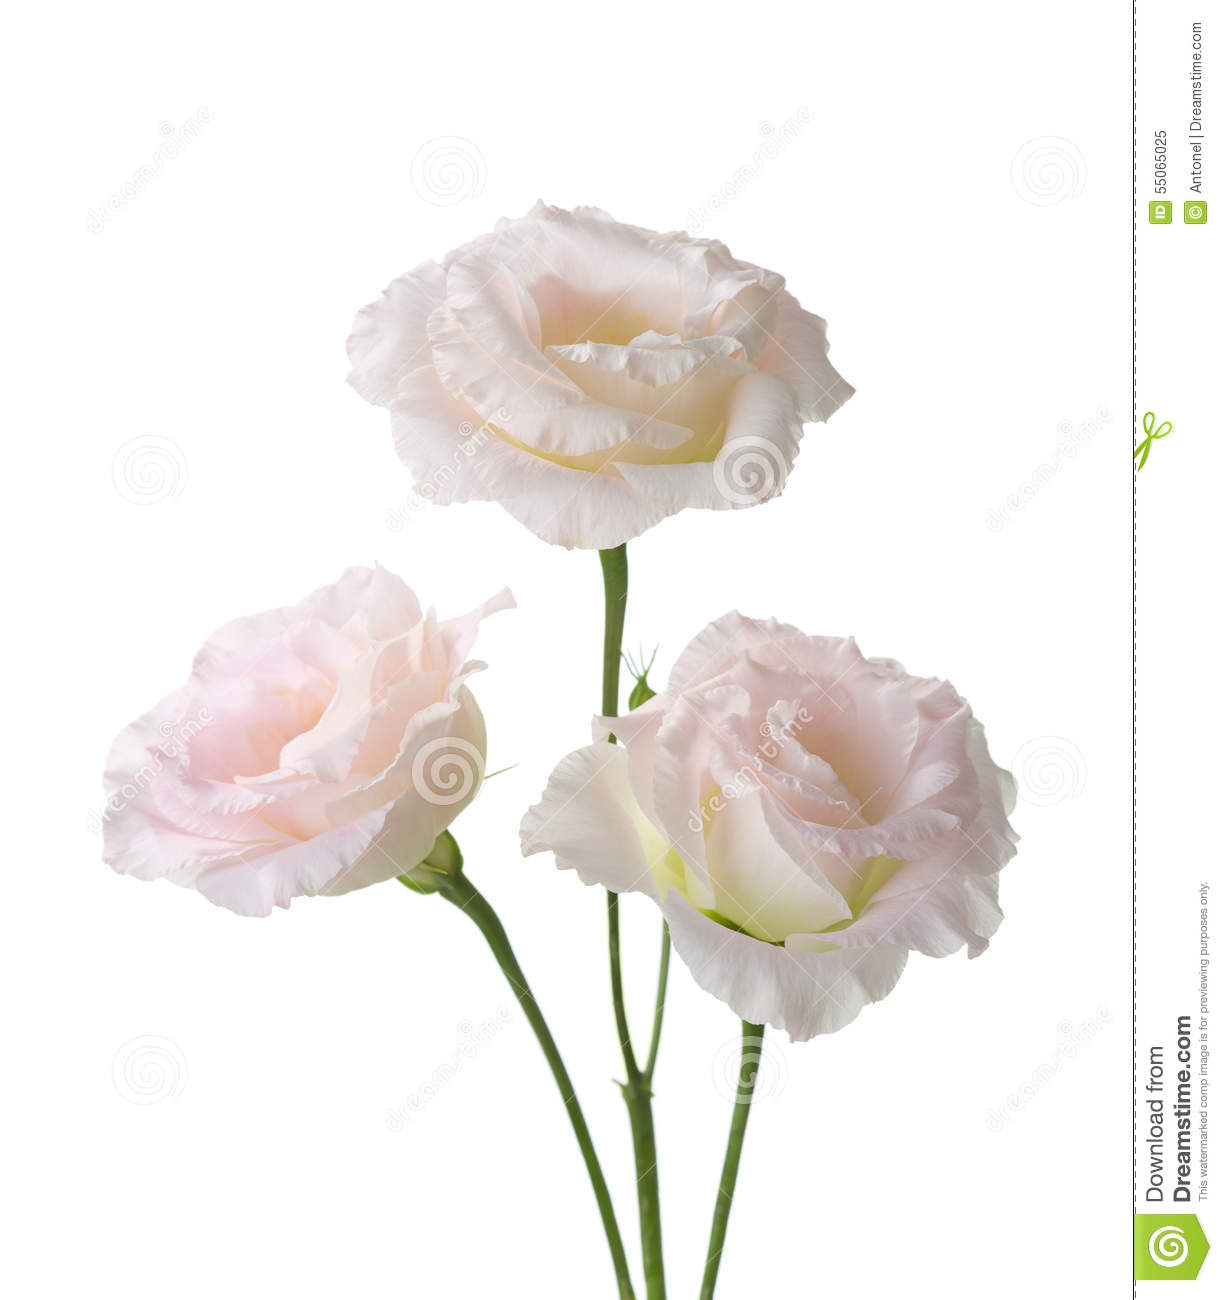 Three pale pink flowers stock image image of elegance 55065025 three pale pink flowers mightylinksfo